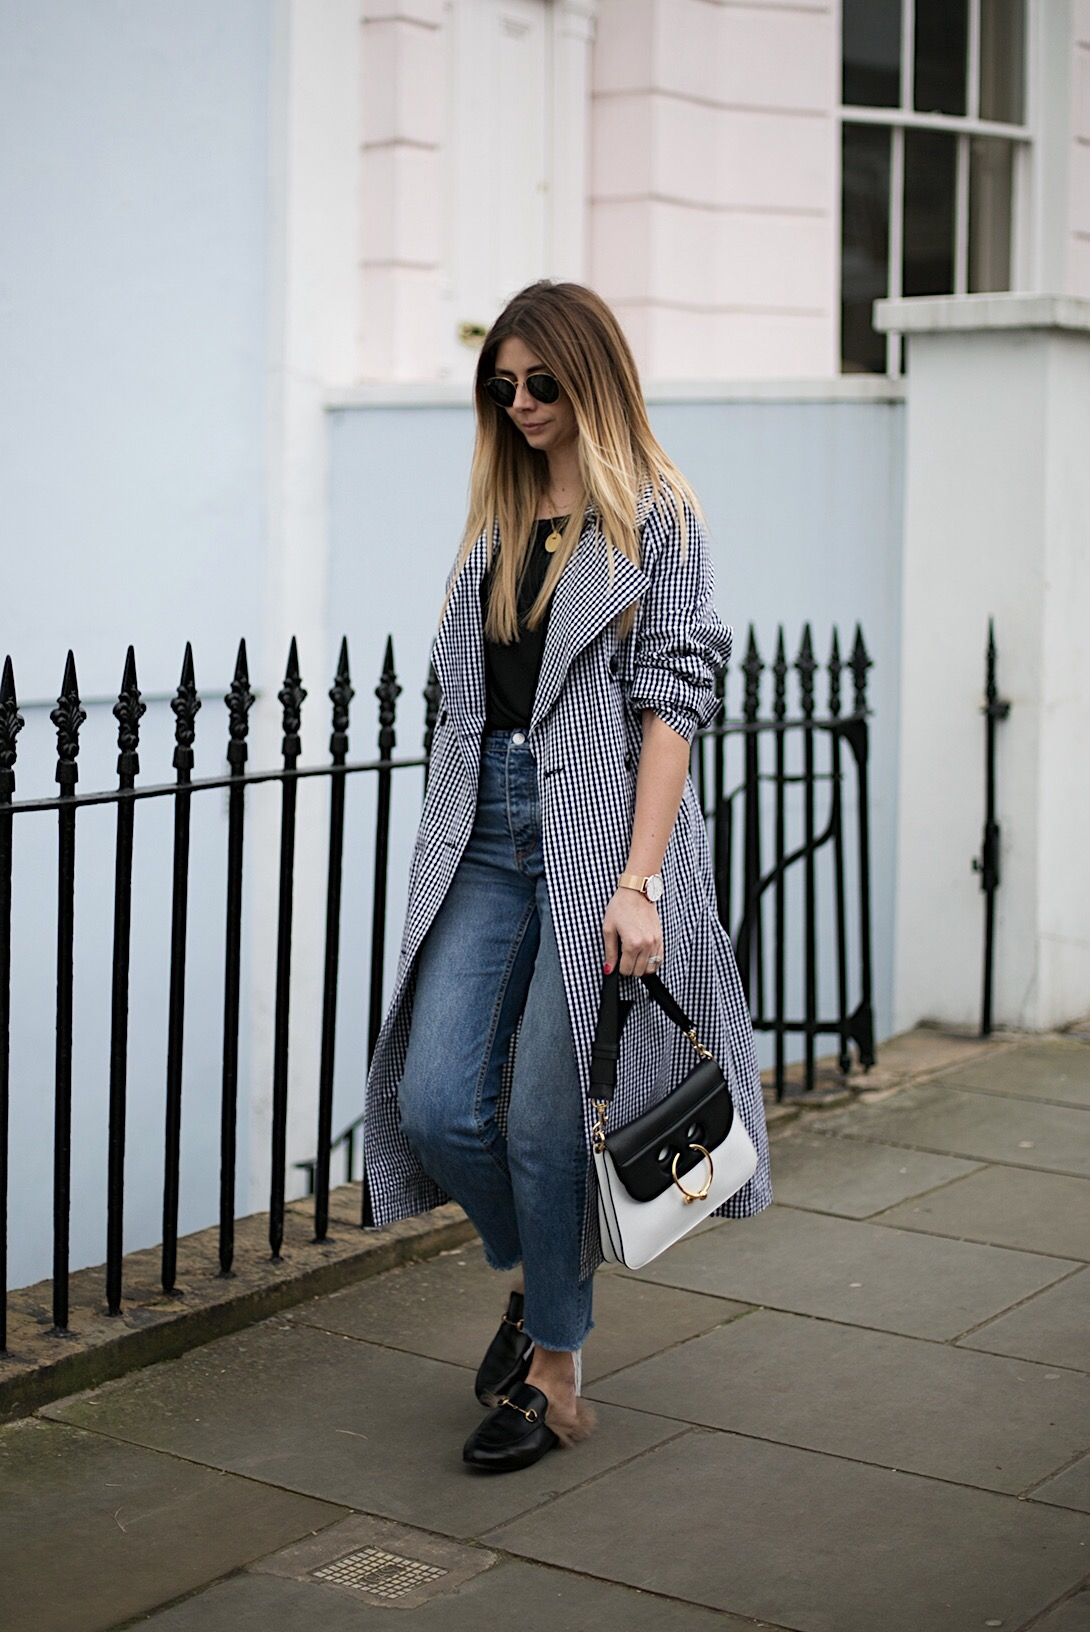 gingham trench coat, jeans, J.W. Anderson Pierce bag, black t-shirt, gold jewellery, Gucci Princetown fur slippers, Spring outfit